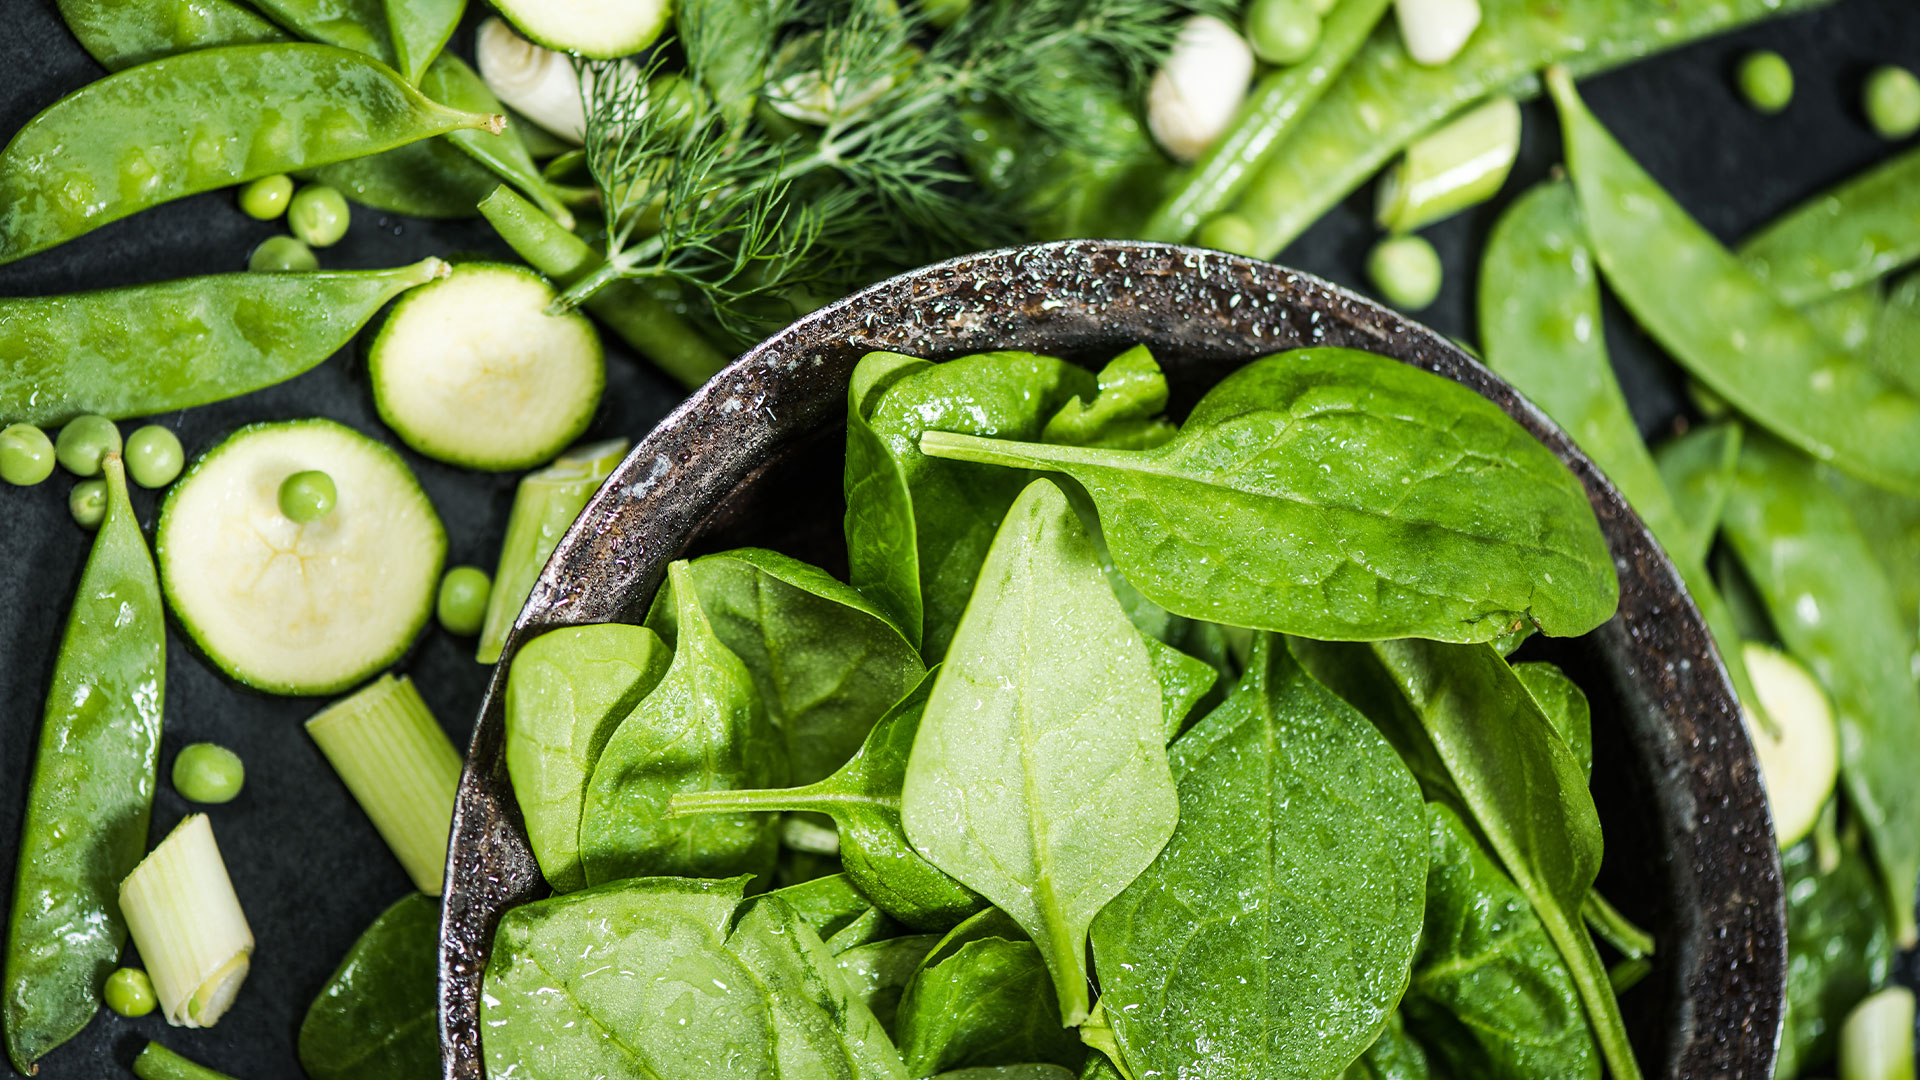 Image of leafy greens and green vegetables